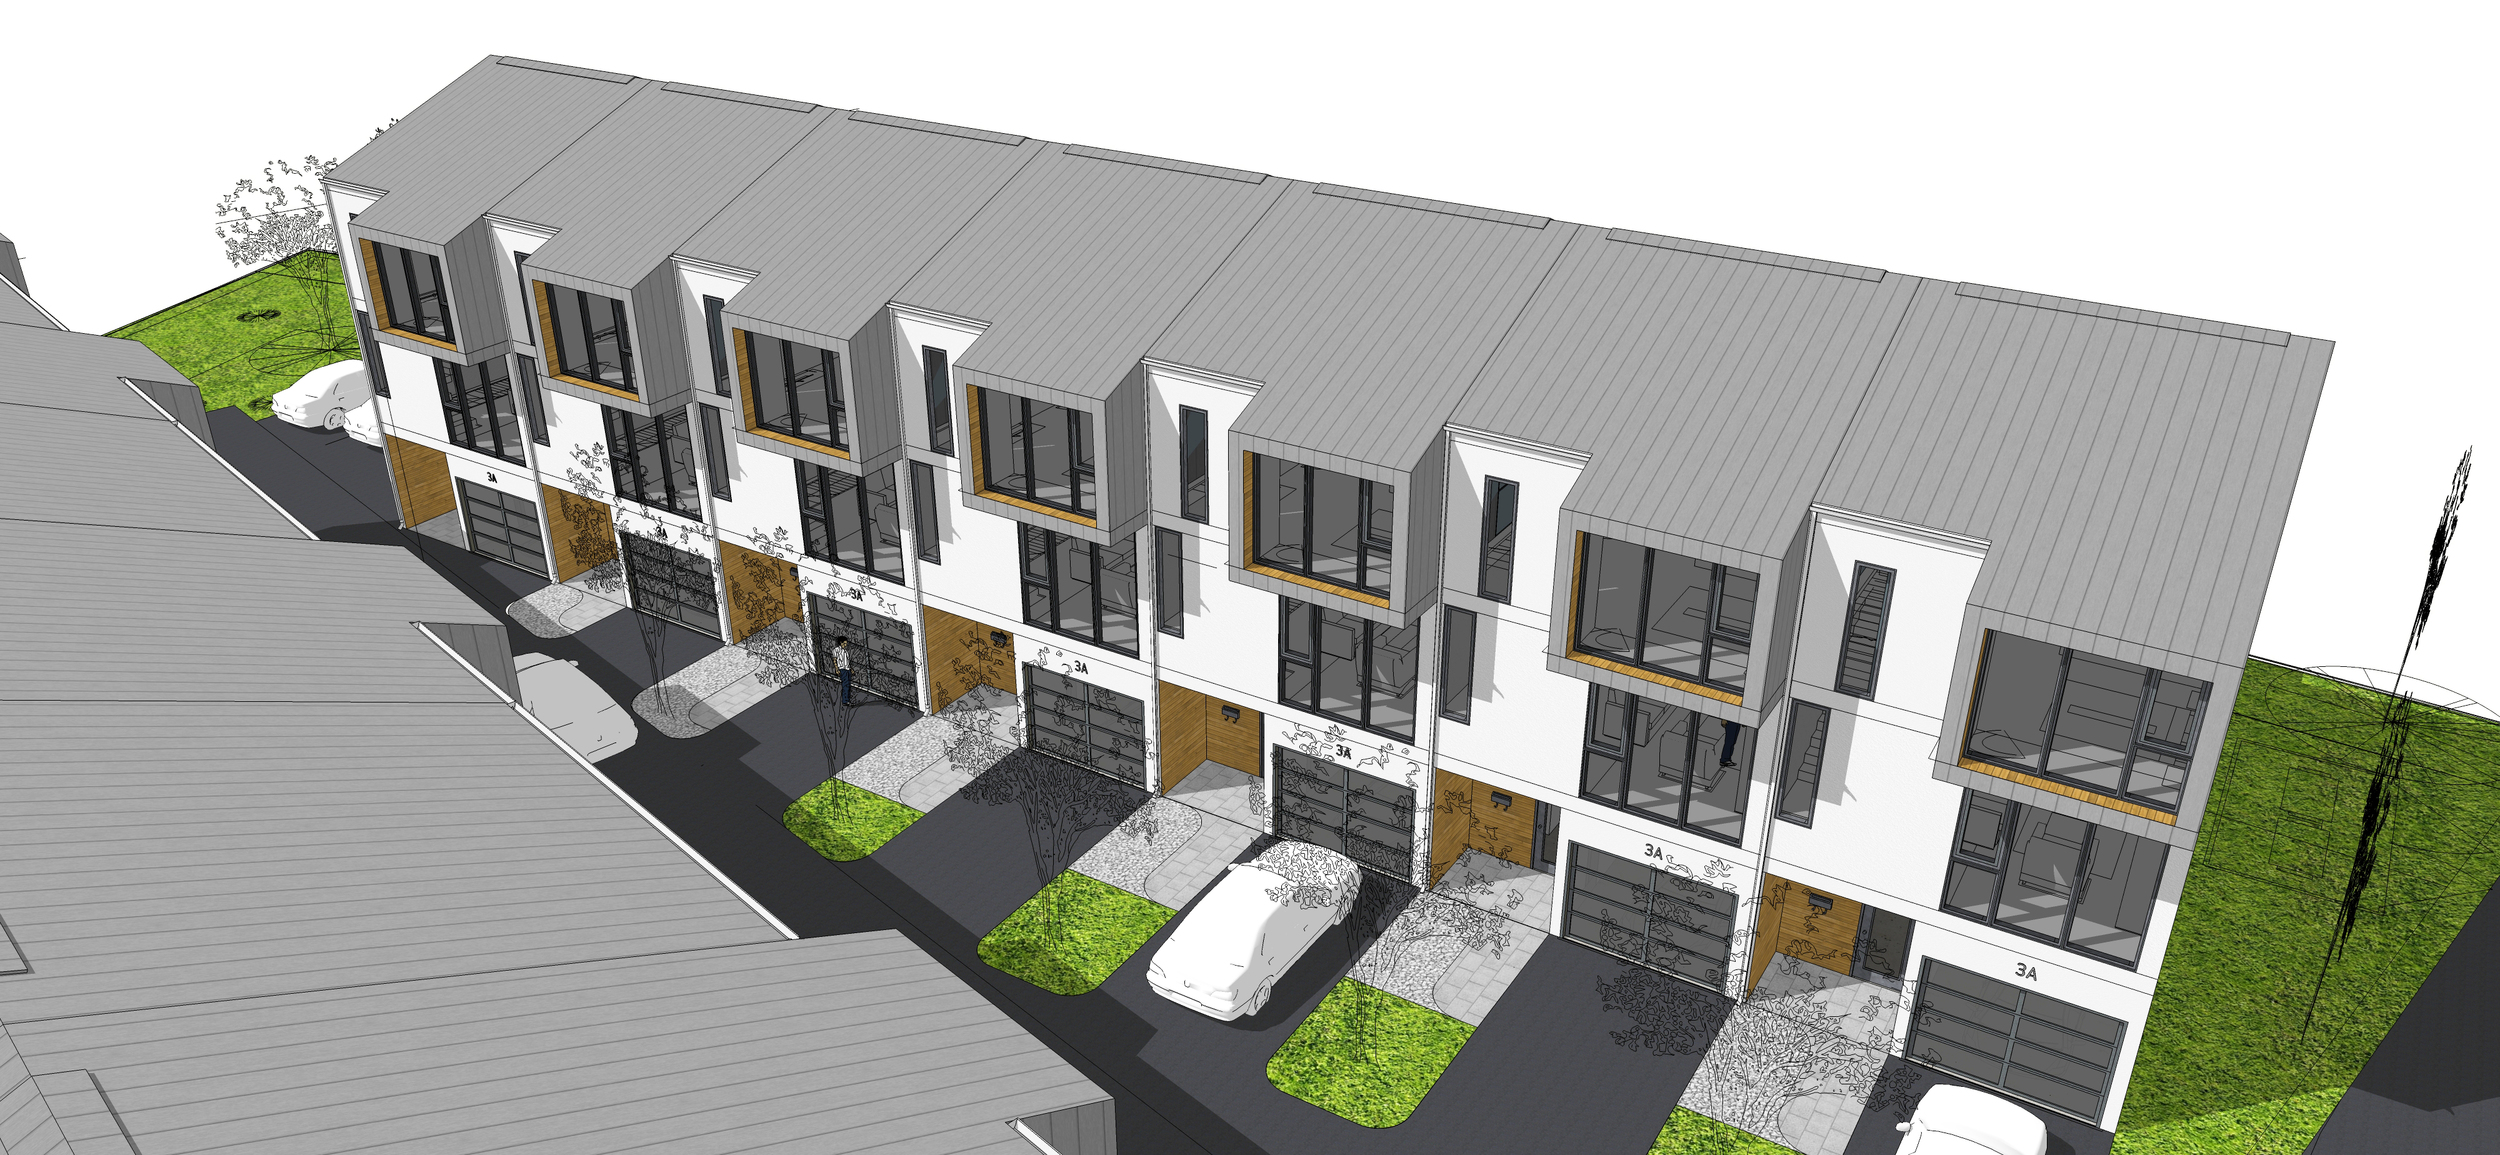 2013_12_Townhouses_perspective-1.jpg